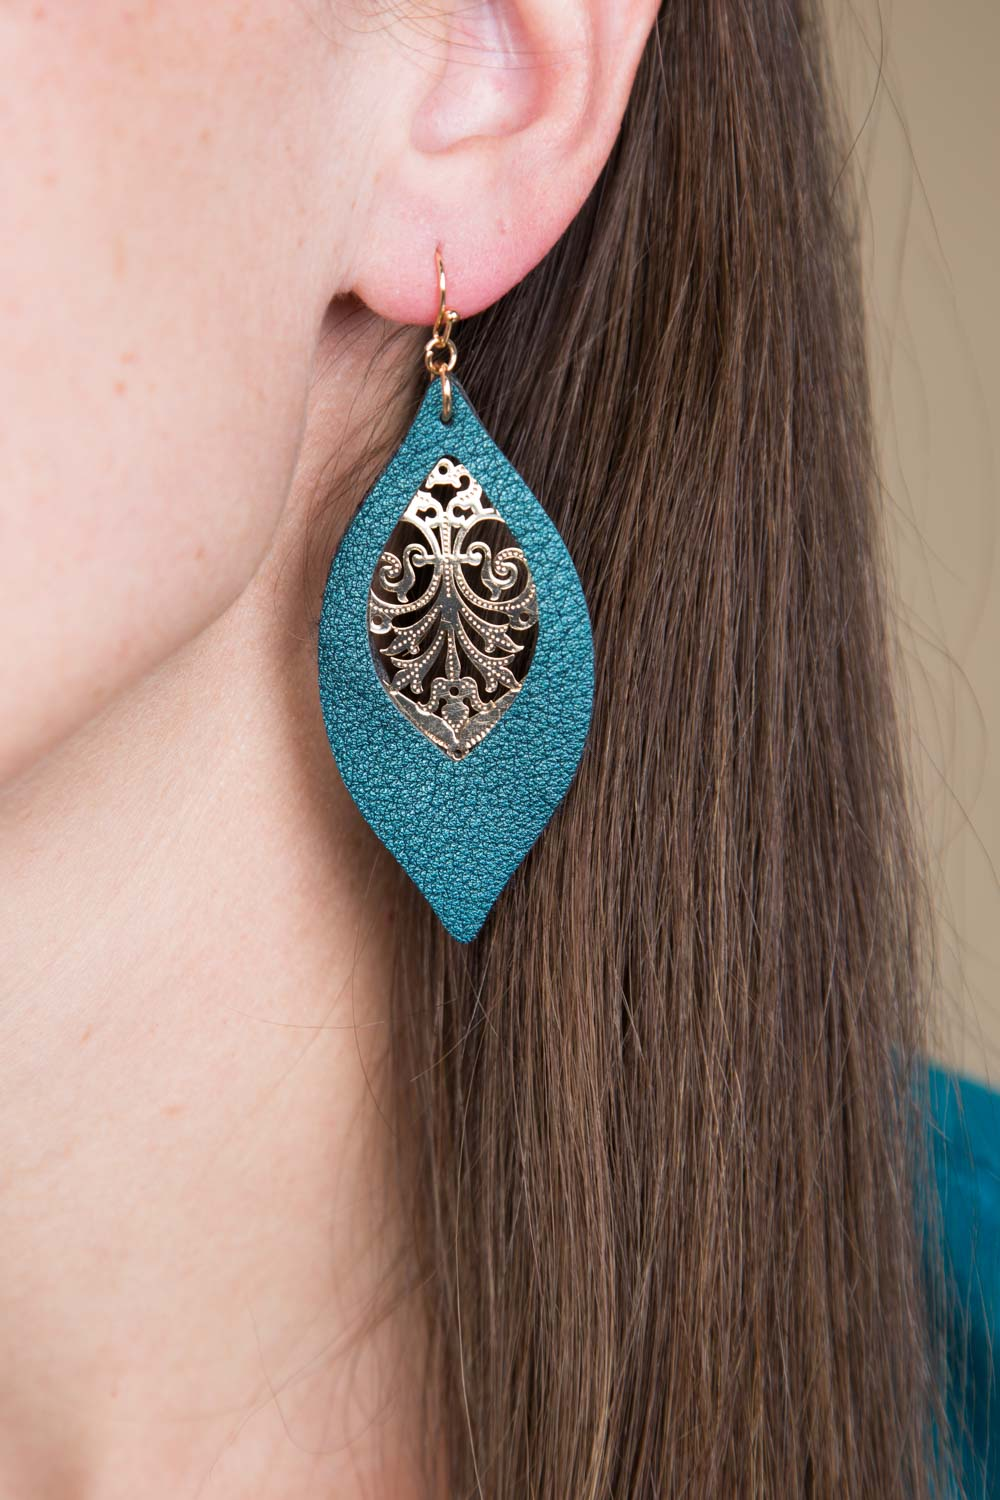 Type 3 Teal Me I Can! Earrings